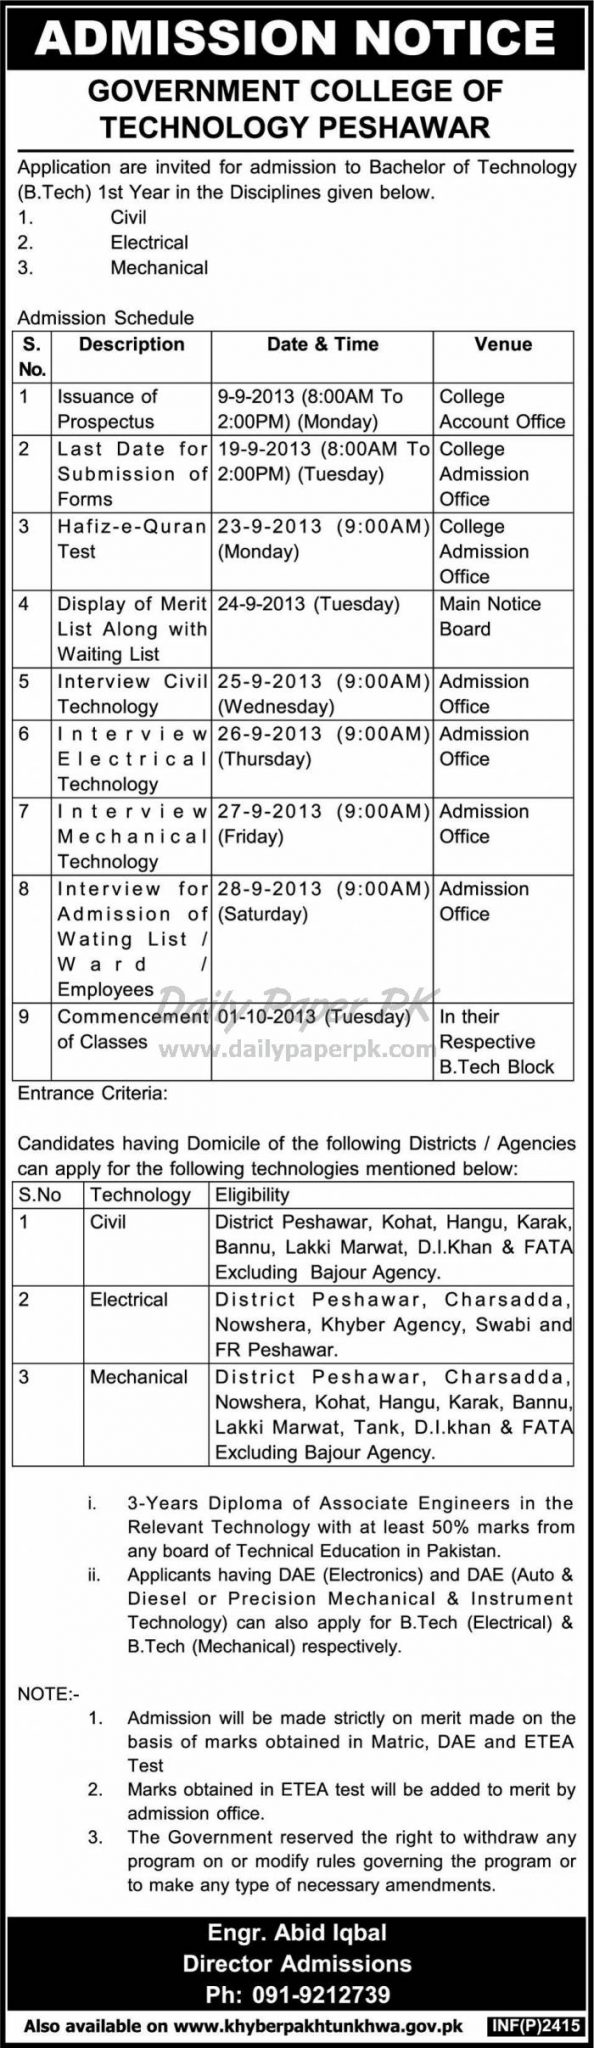 Admission Open In Government College of Technology Peshawar